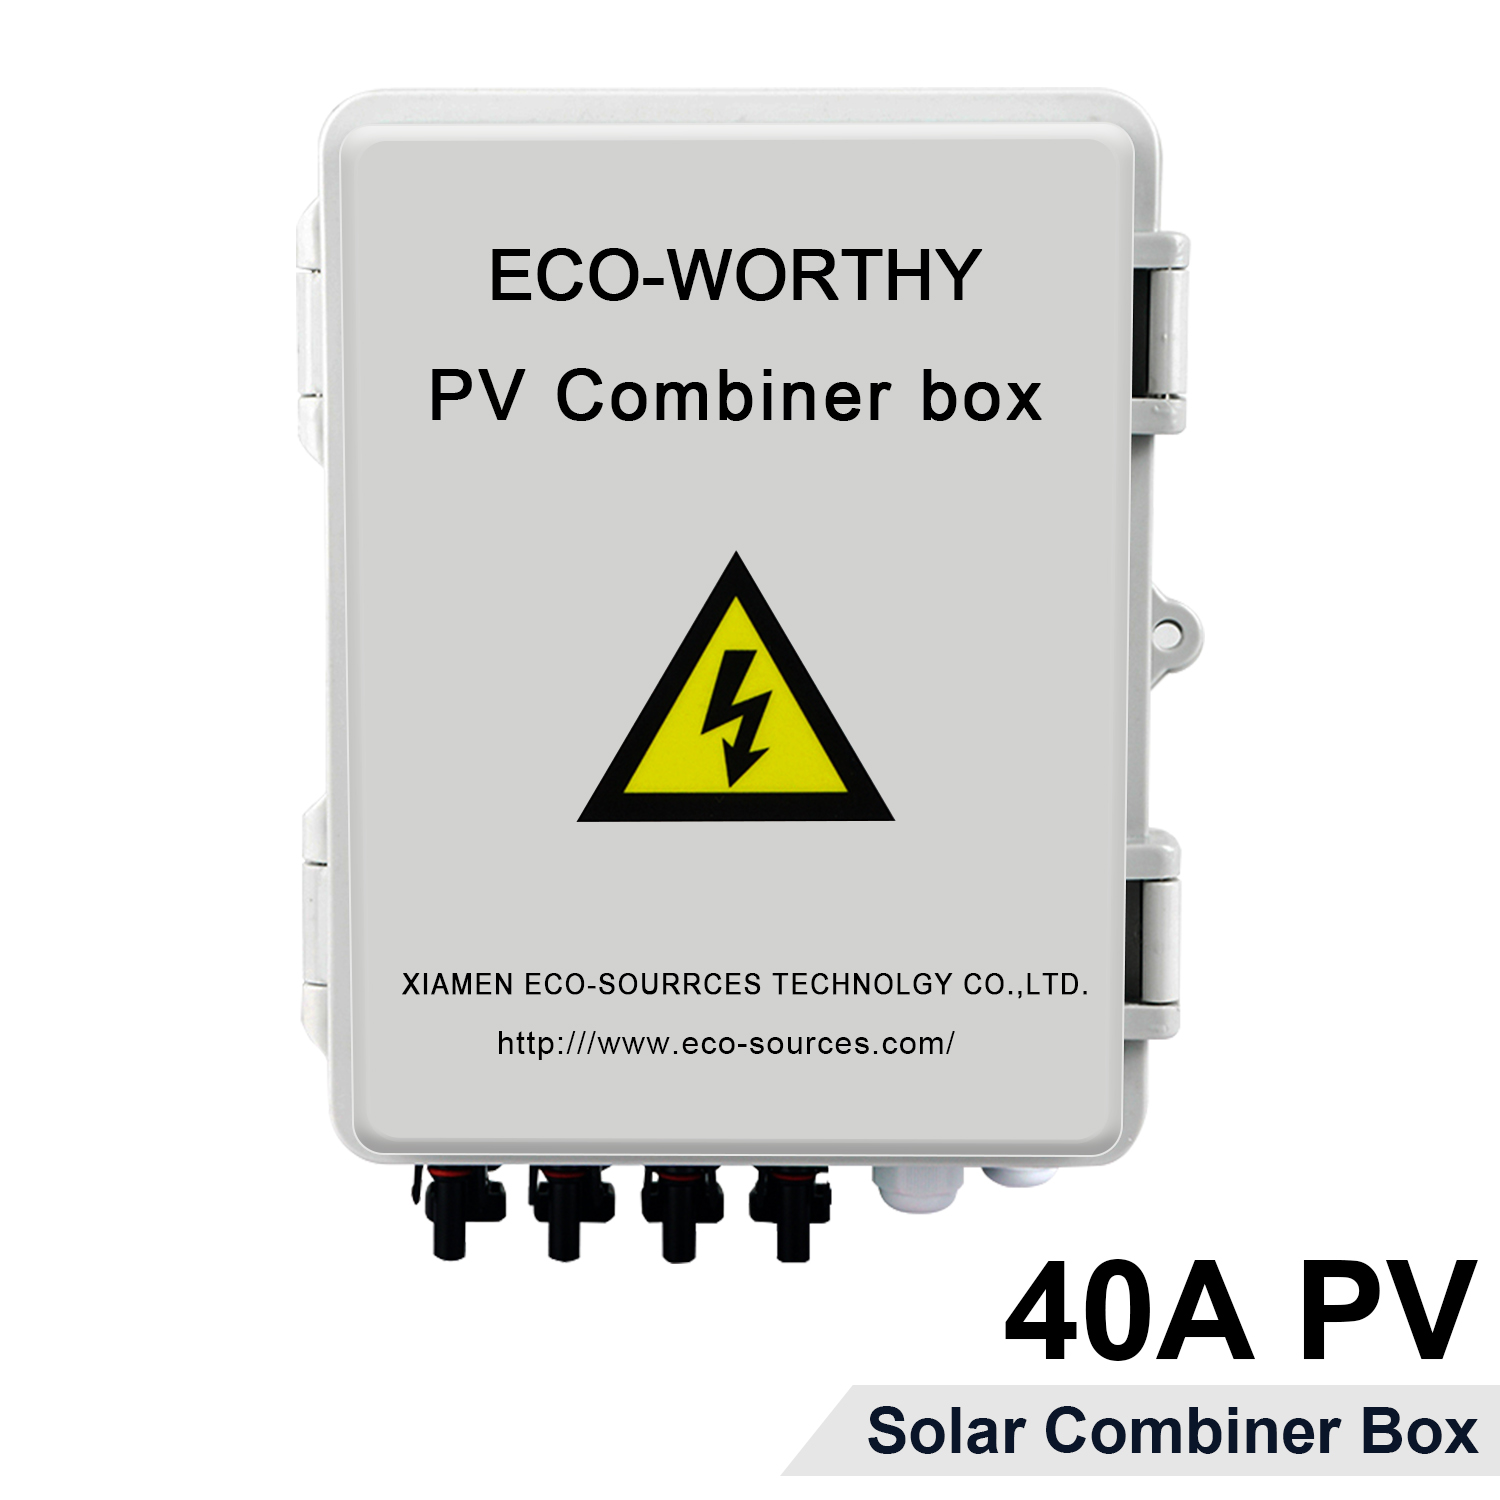 4 String PV Combiner Box With Lightning Arreste, 12A Rated Current Fuse And Circuit Breakers For On/Off Grid Solar Panel System